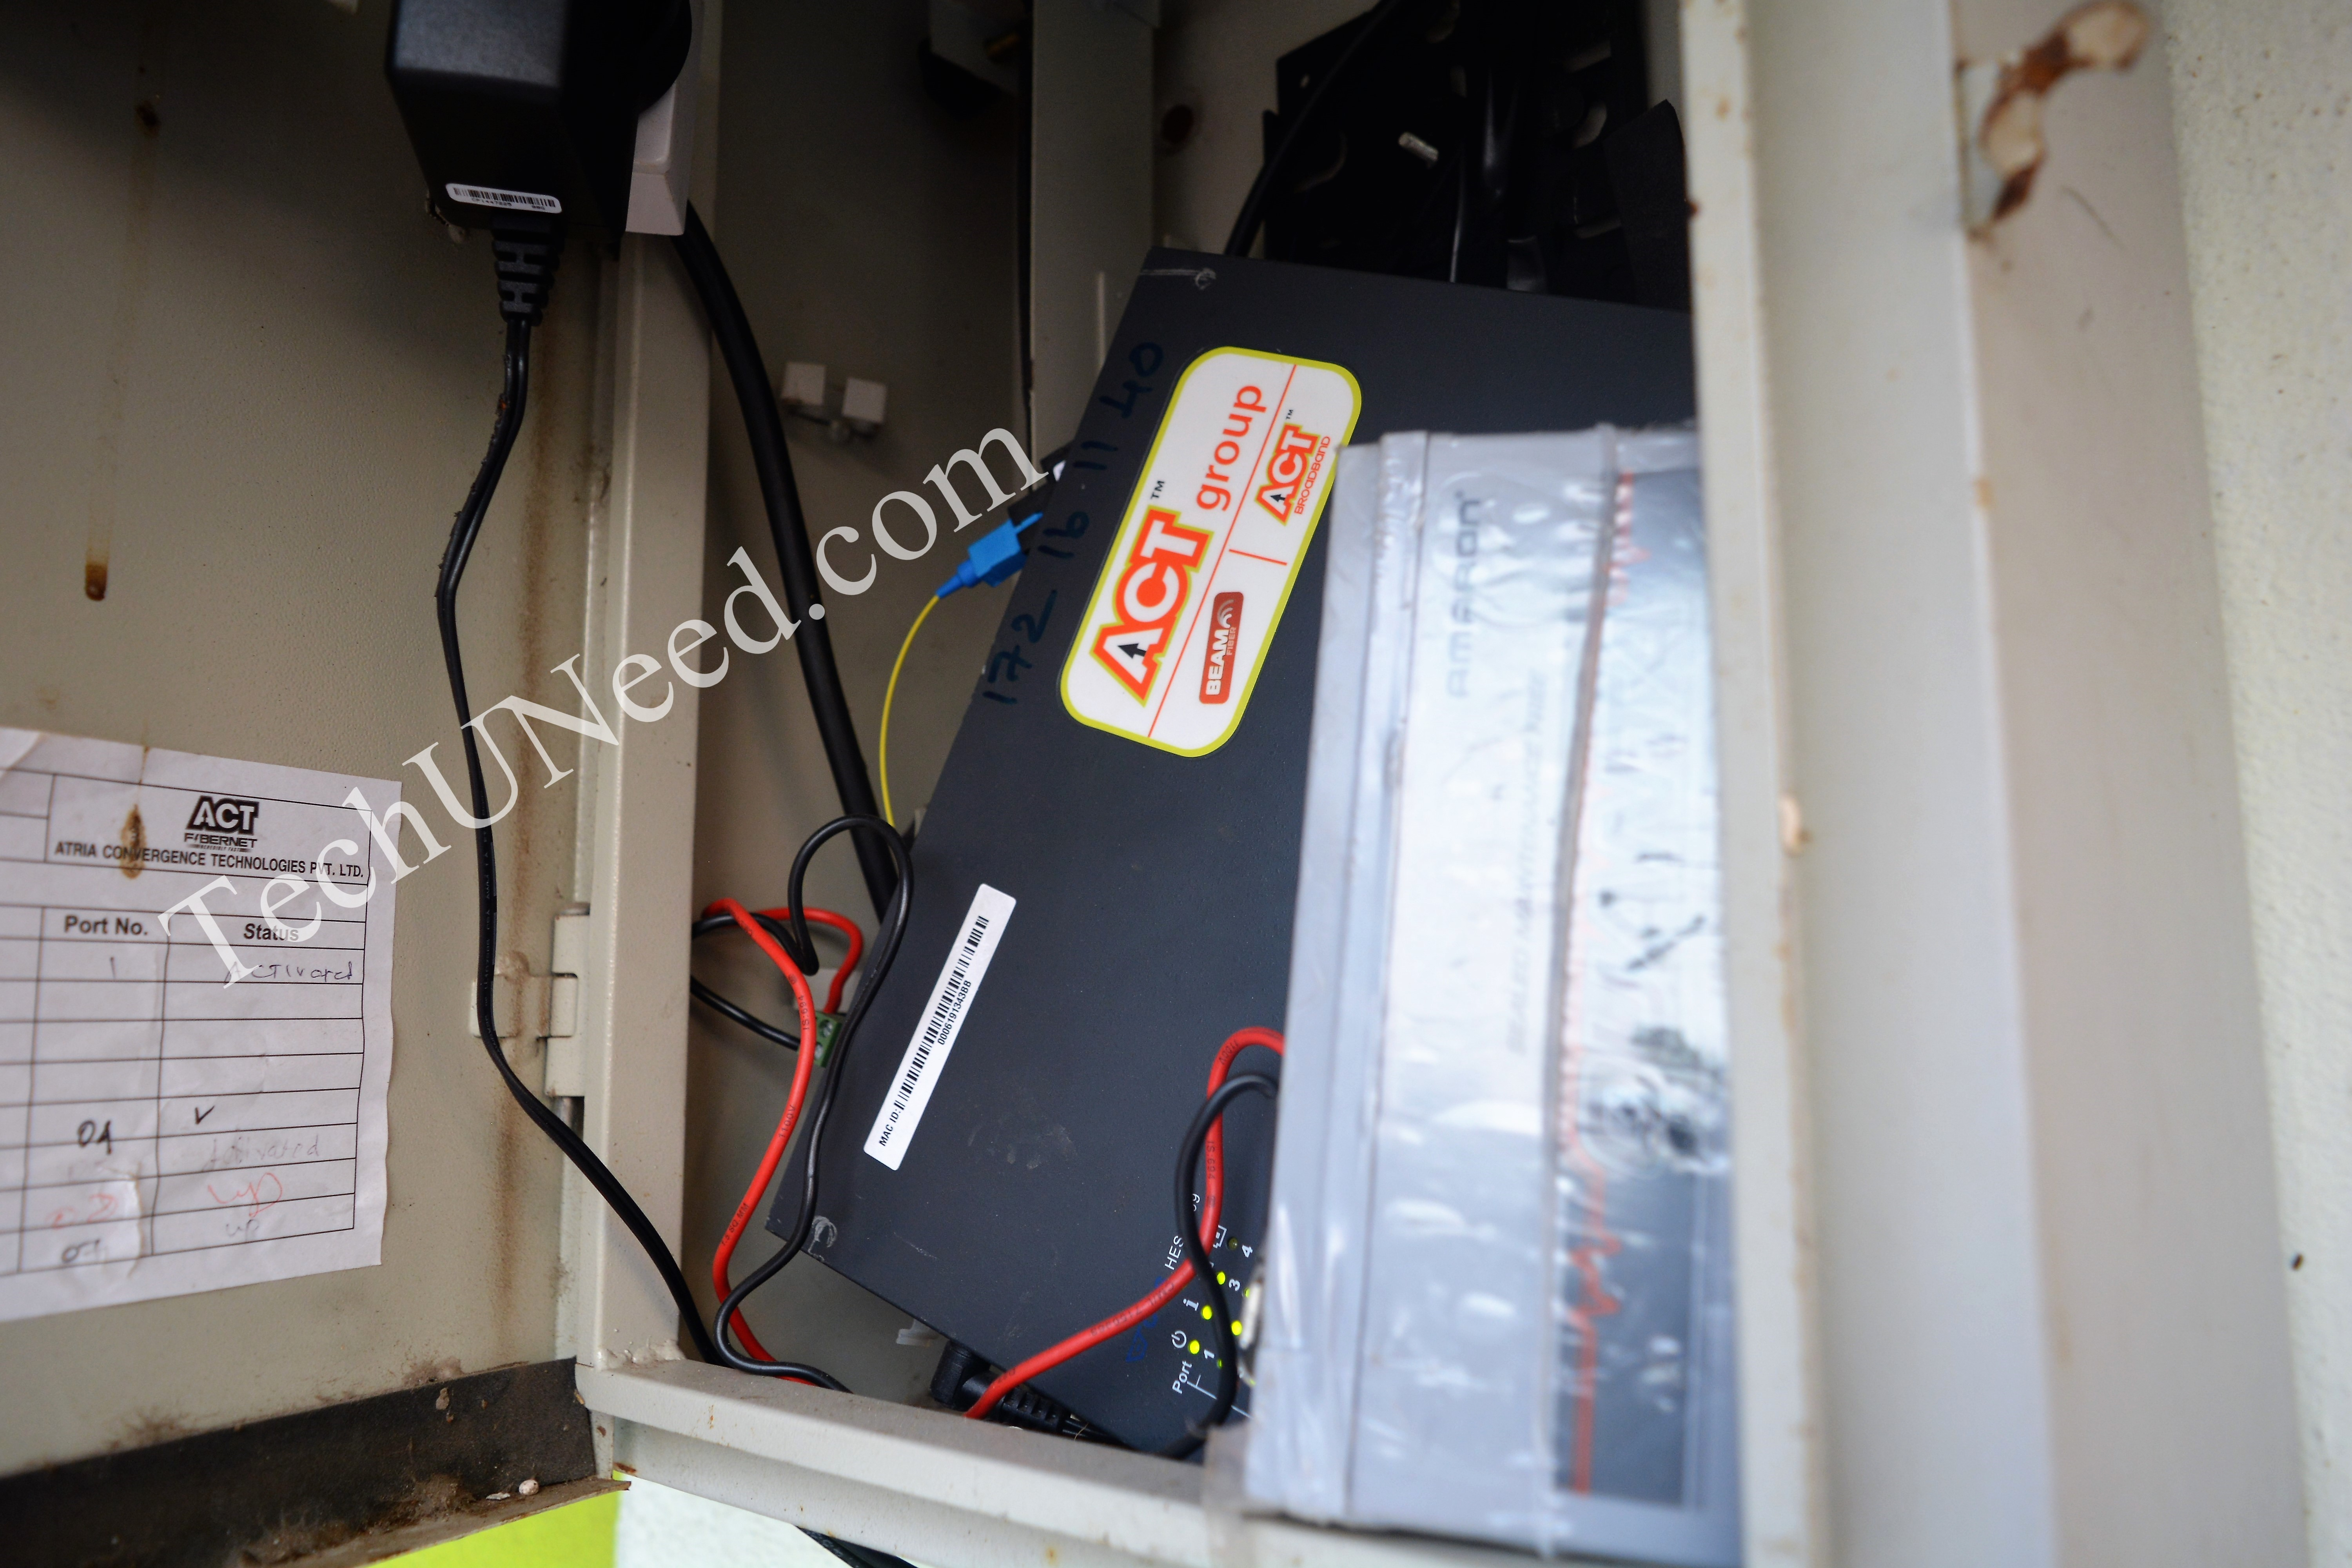 ACT Fibernet box